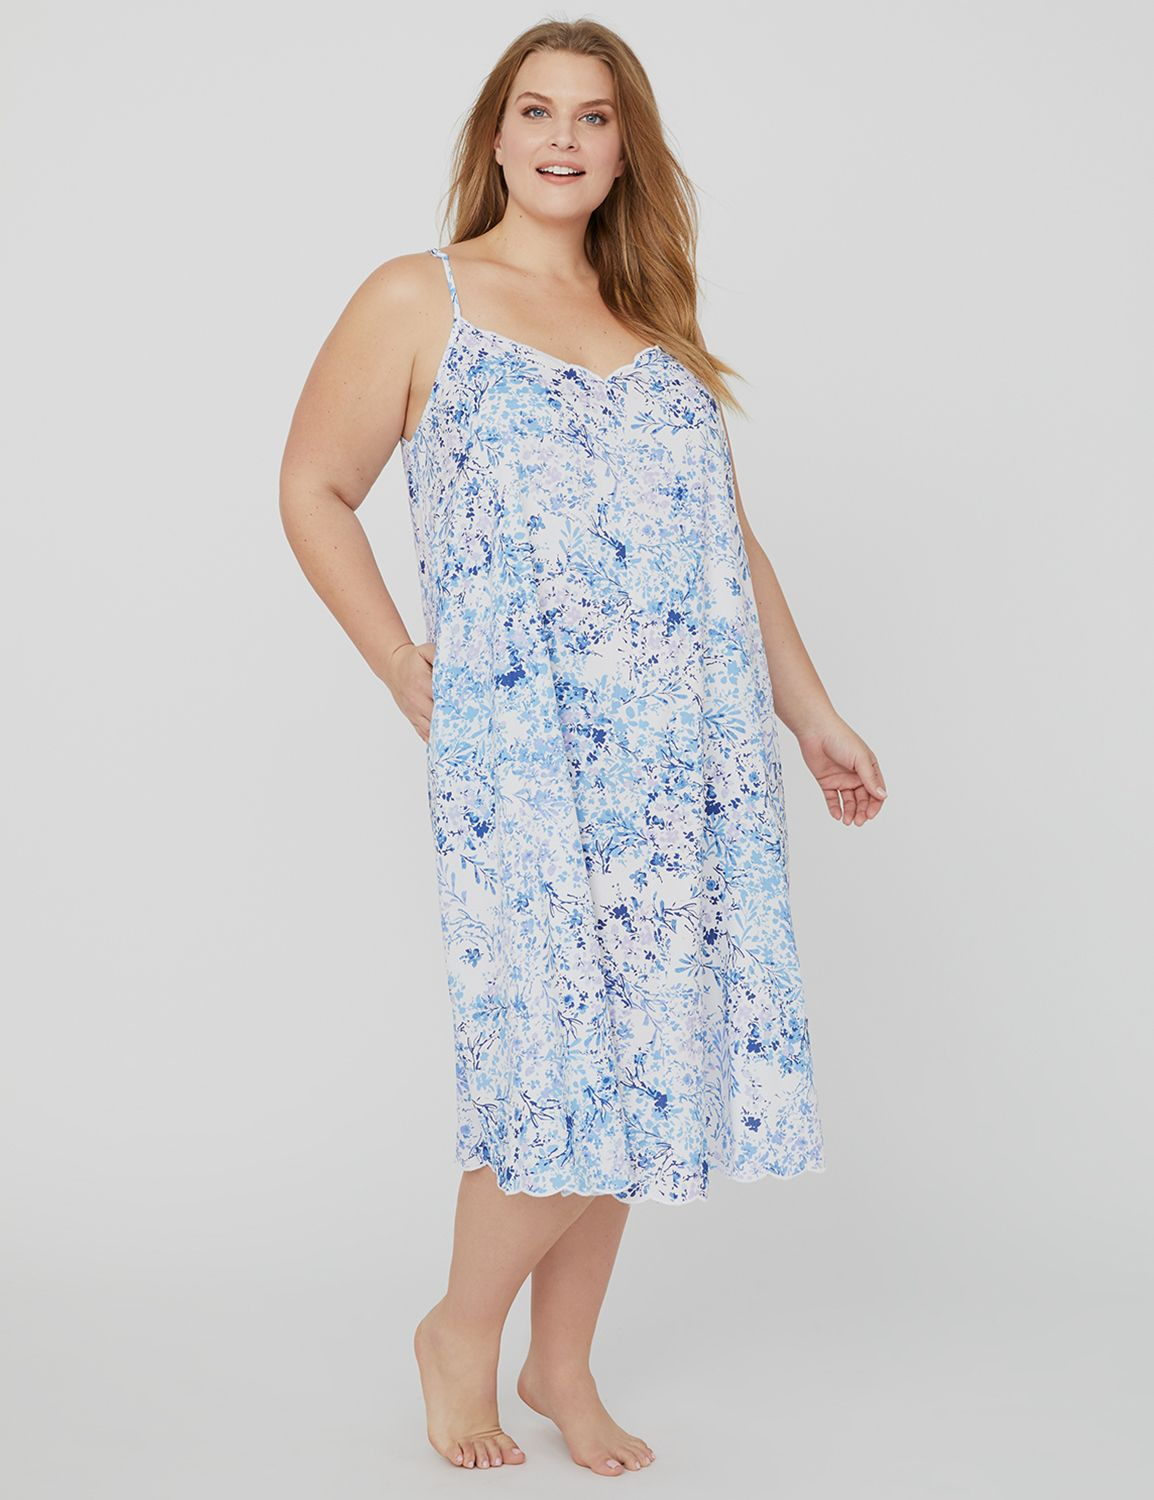 Scalloped-Edge Sleep Gown 1088493- Printed Challis Woven Midi MP-300096247